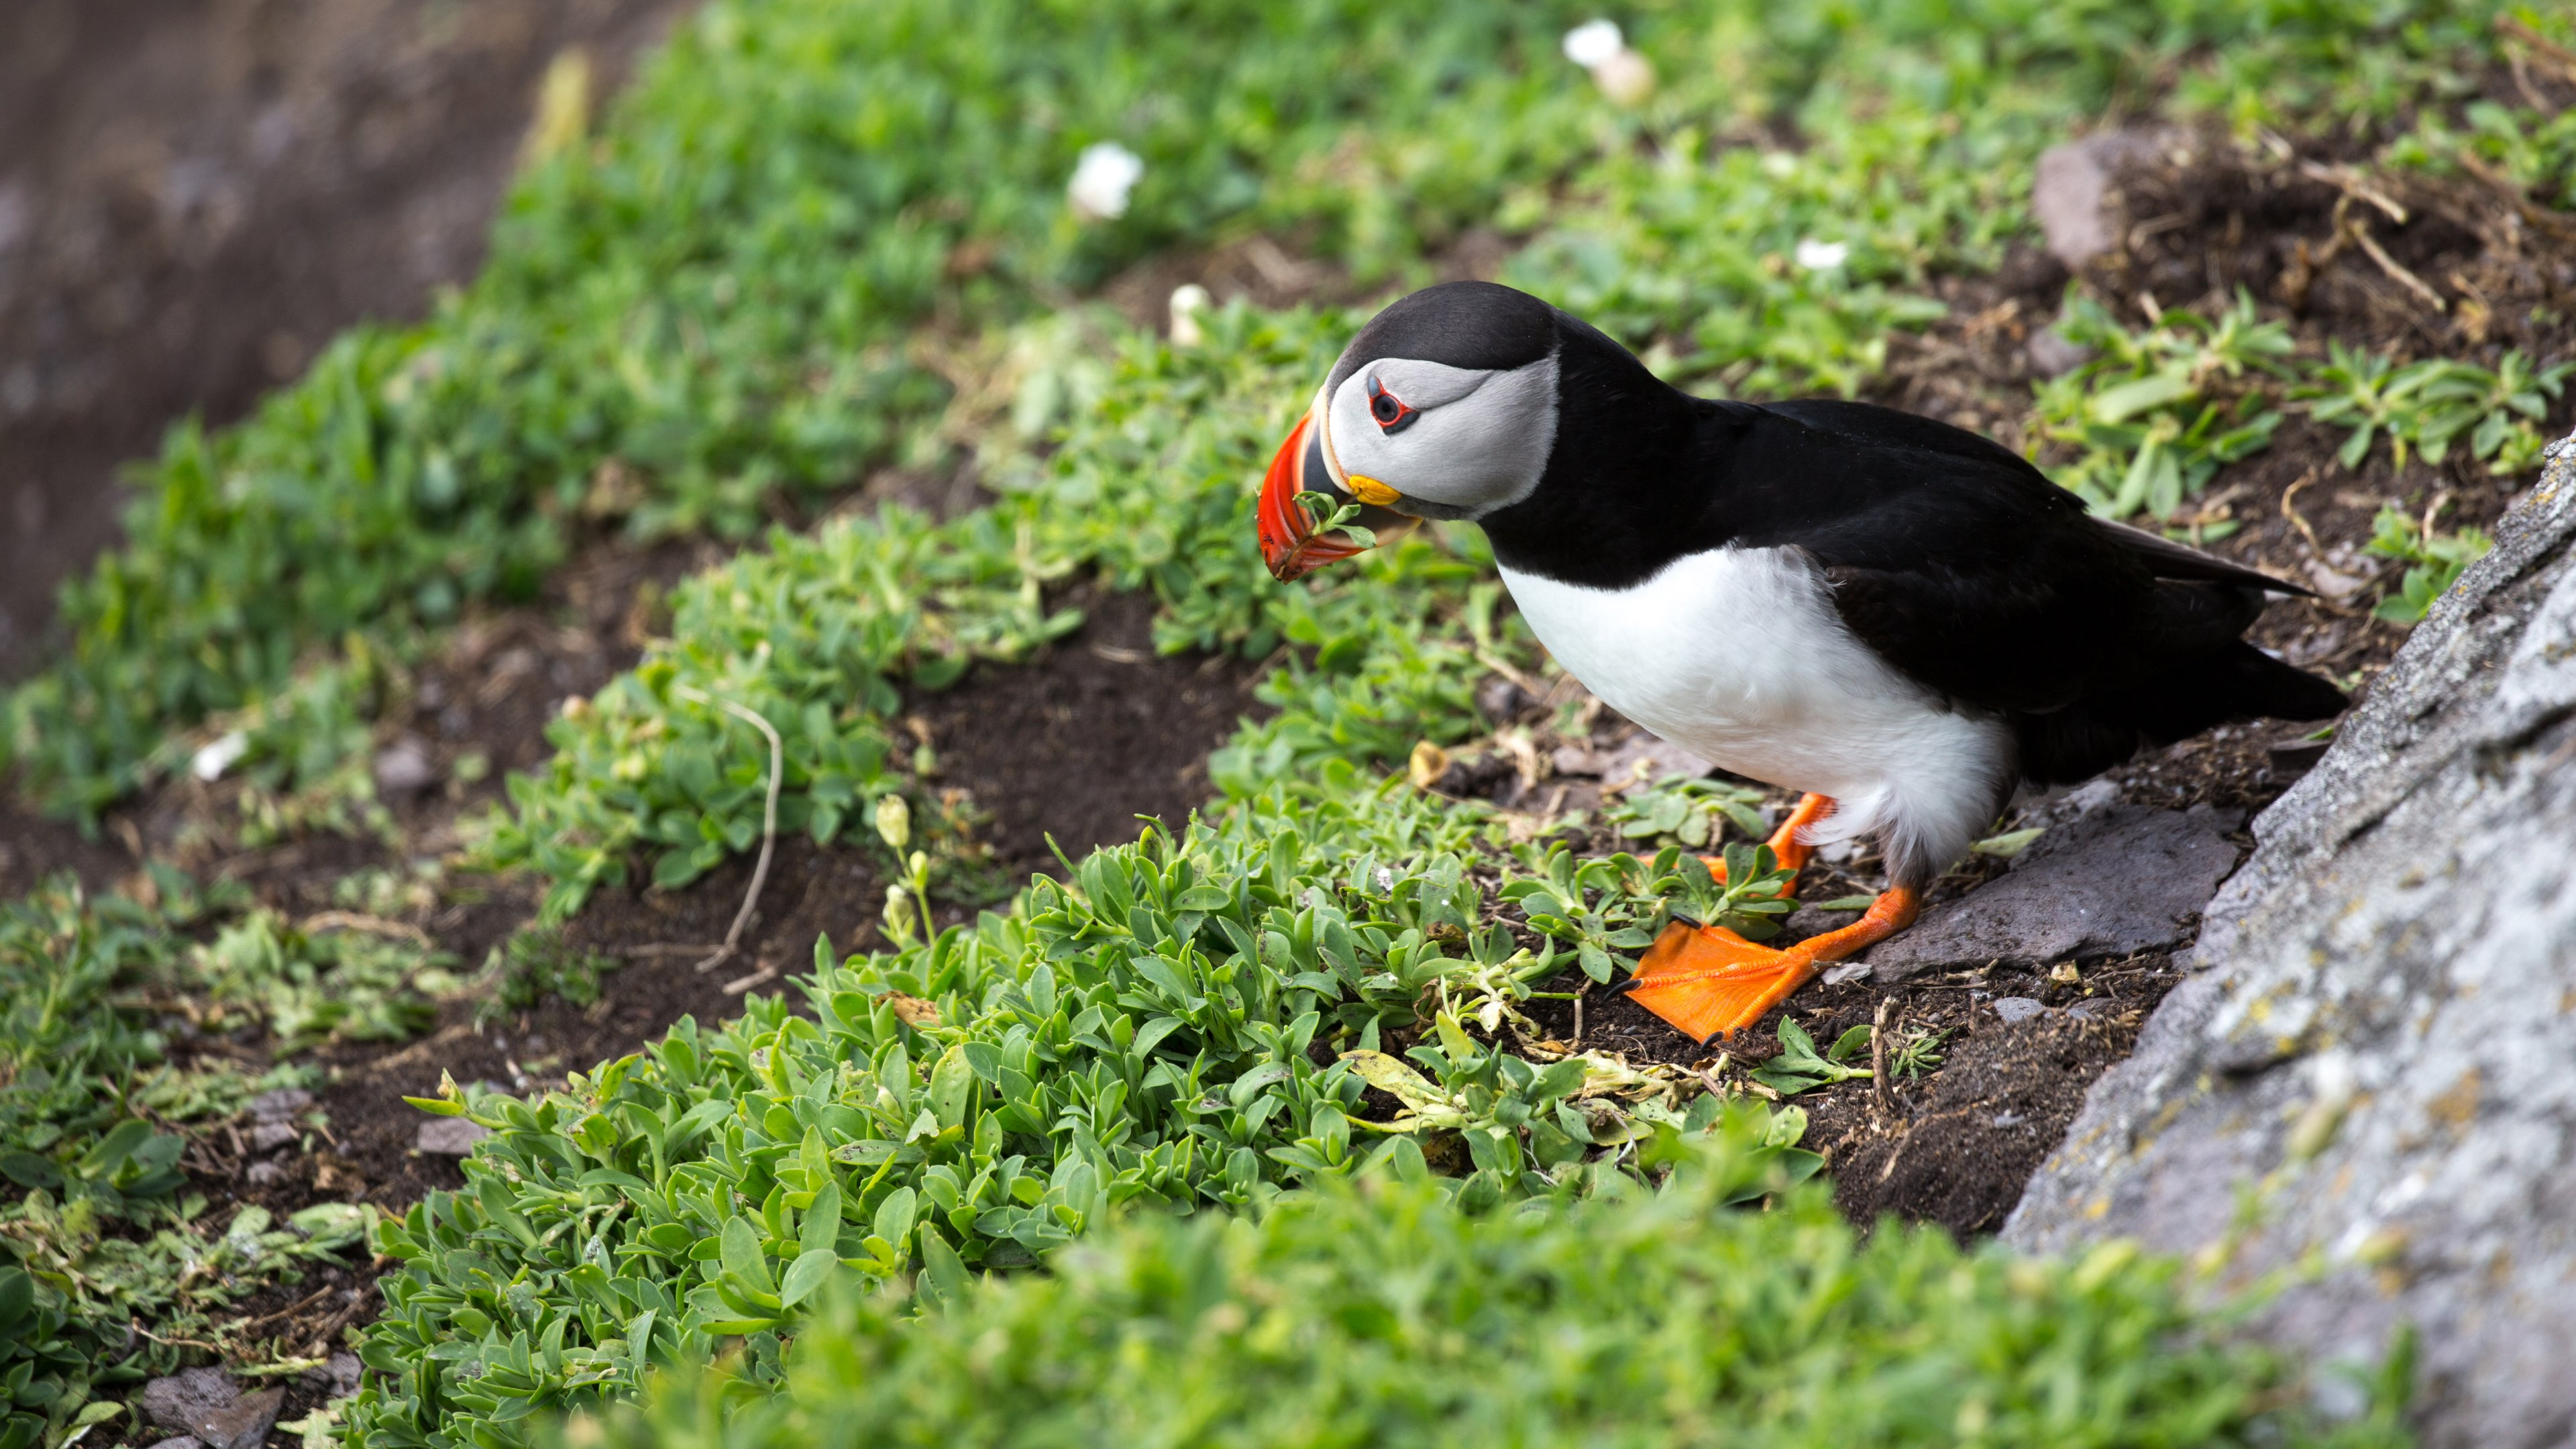 Puffin In Ireland Wallpapers &183 4K HD Desktop Backgrounds Phone Images